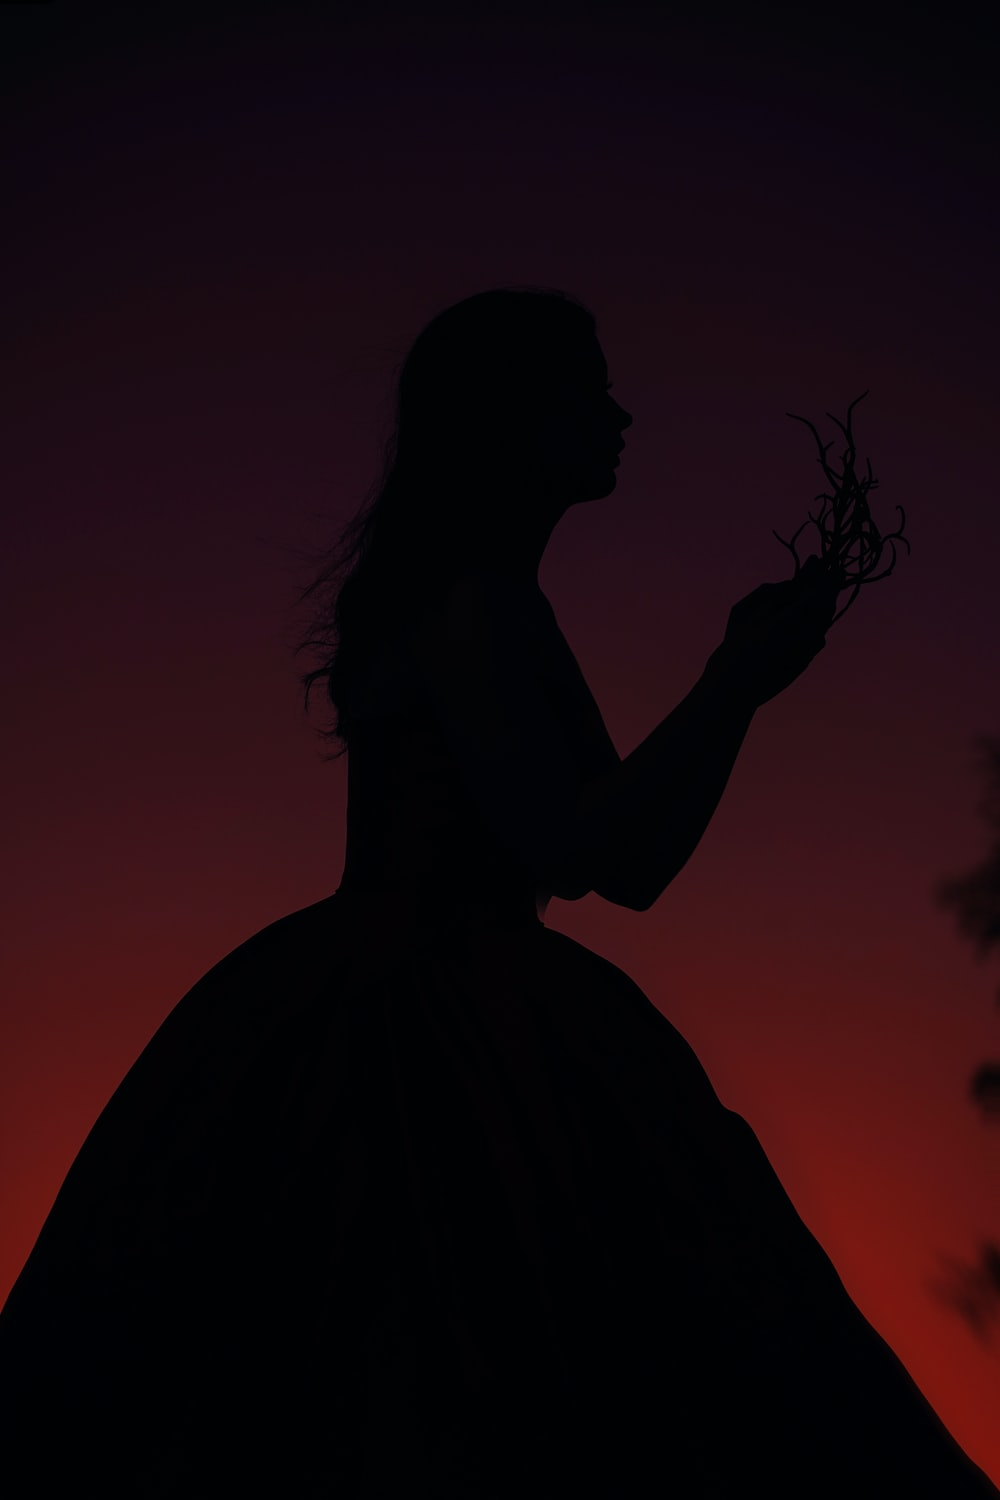 silhouette of woman holding flower